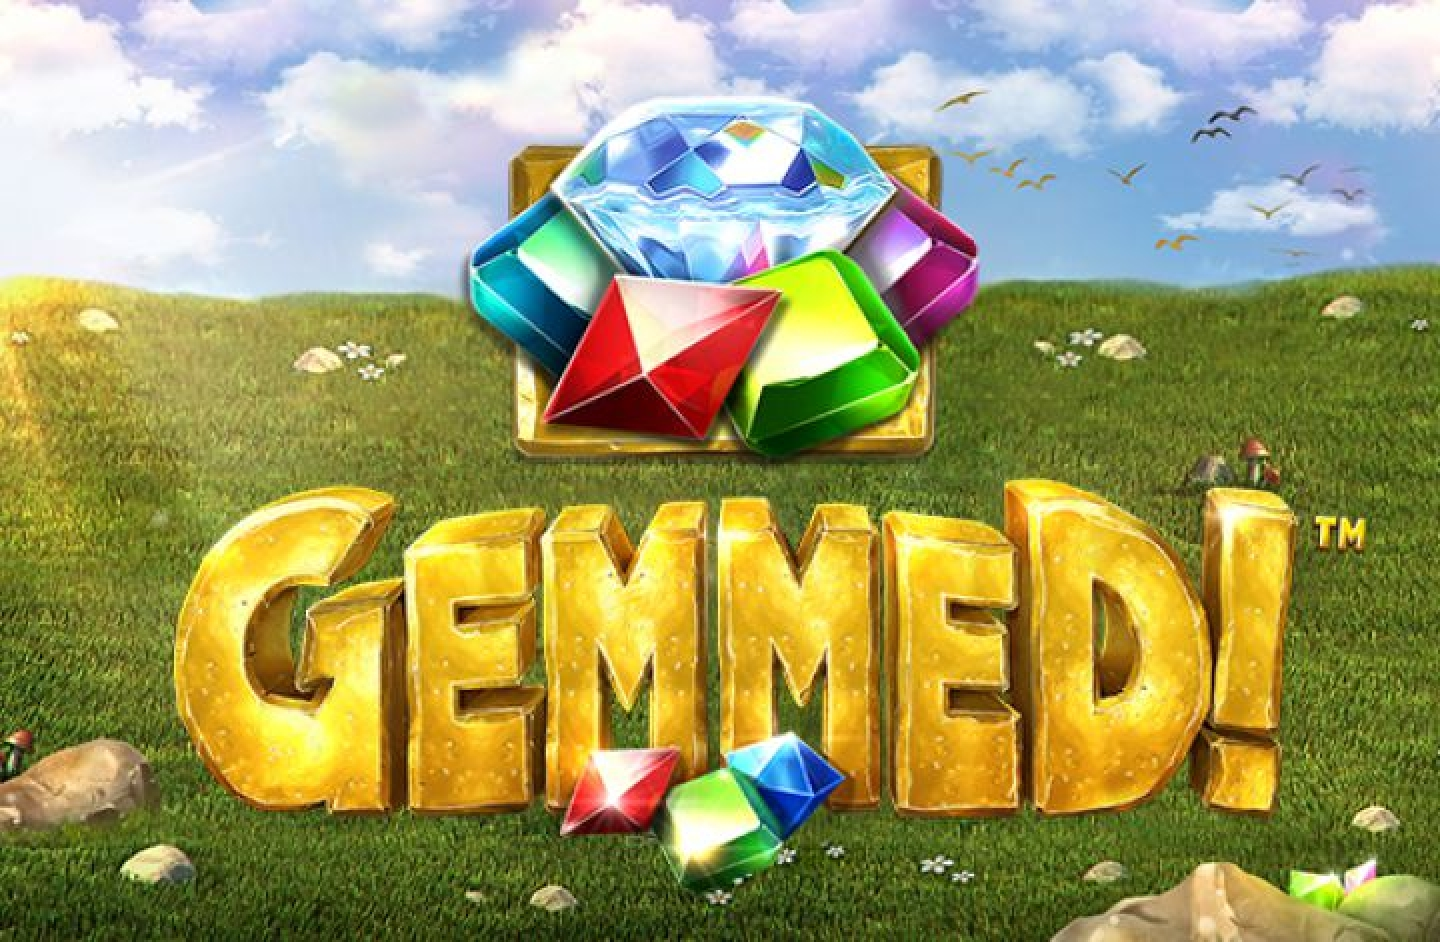 The Gemmed! Online Slot Demo Game by Betsoft